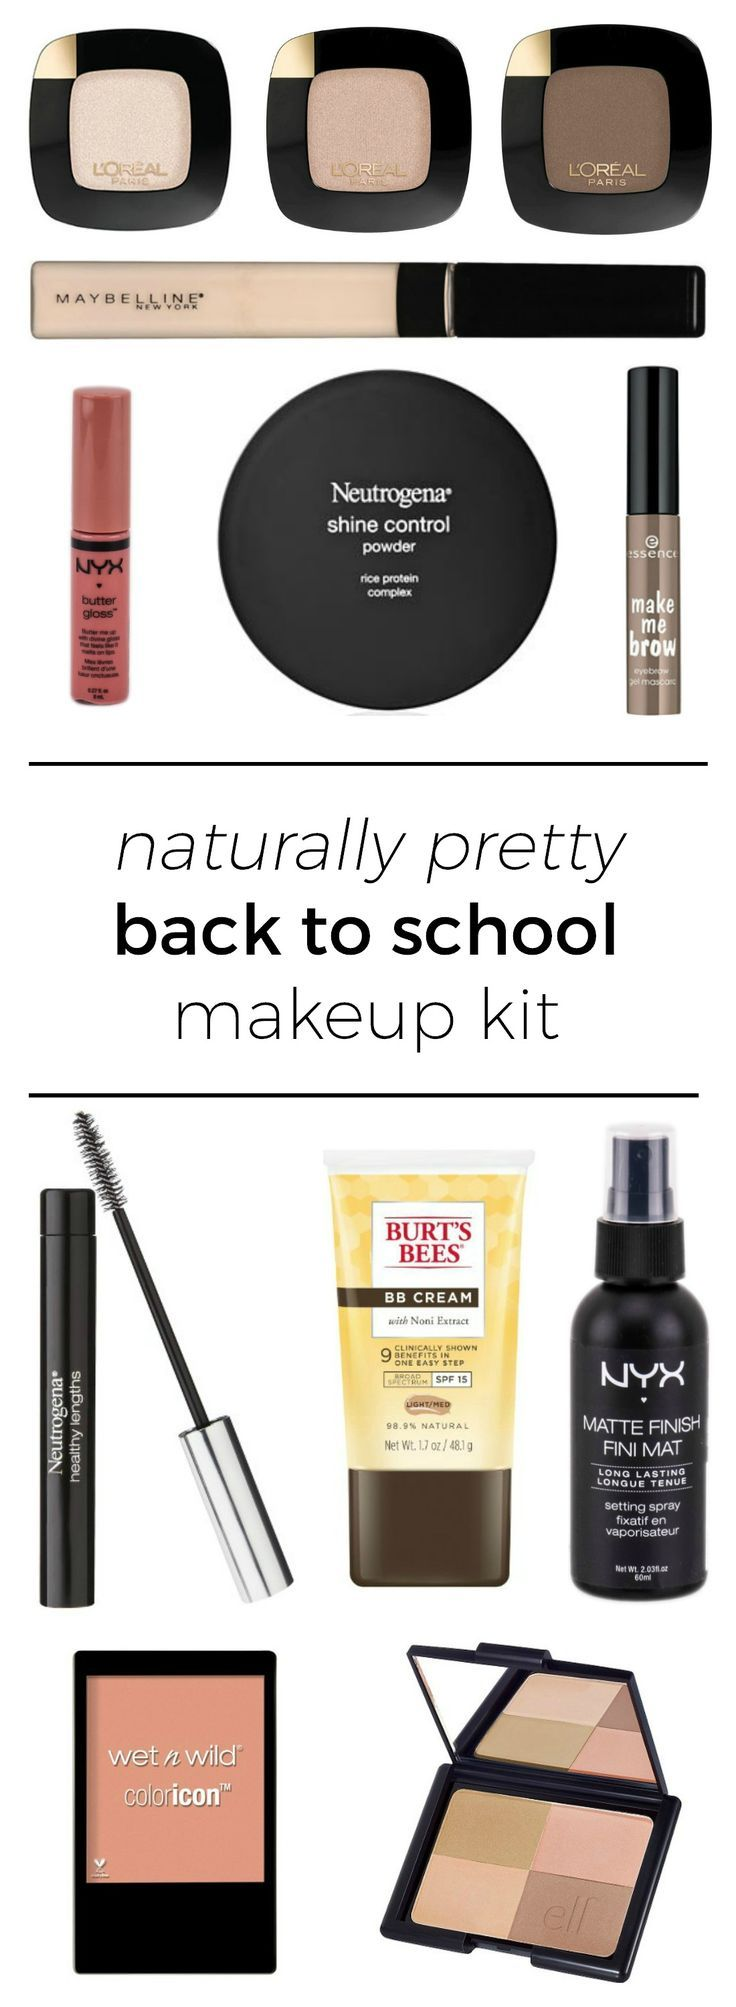 The perfect back to school makeup kit featuring affordable drugstore makeup + the best makeup brushes under $10   by beauty blogger Ashley Brooke Nicholas